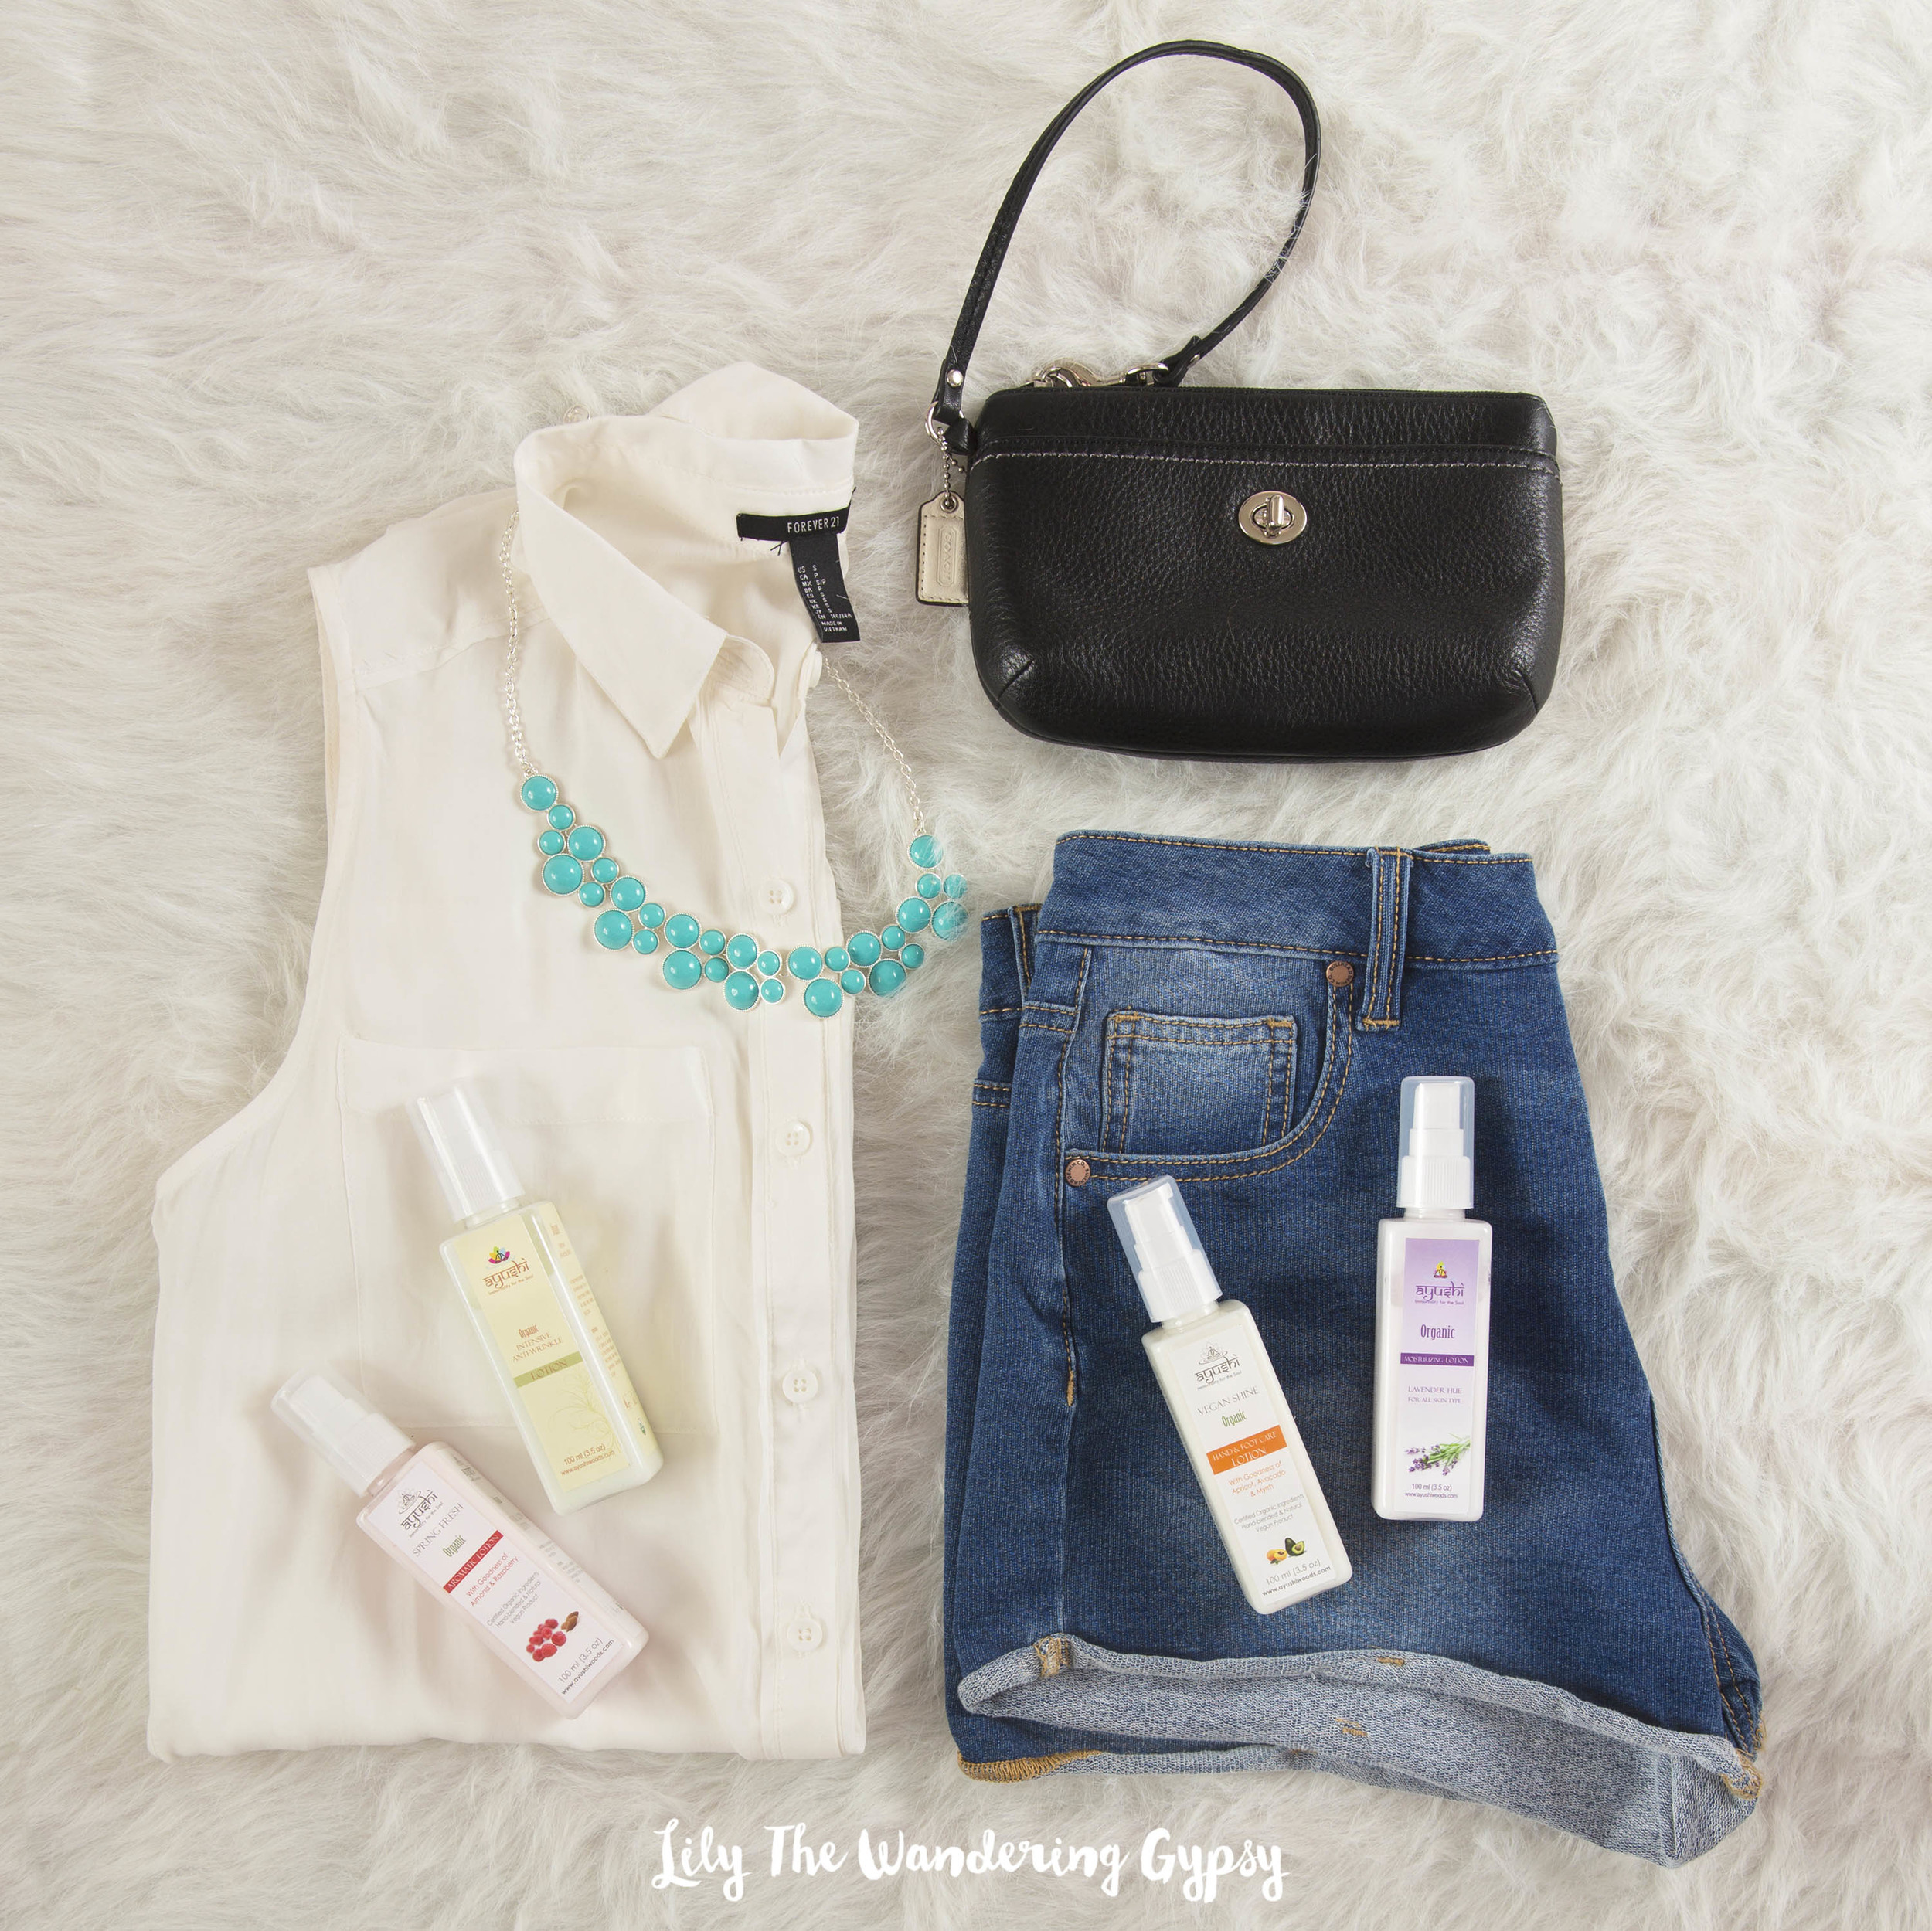 #outfit #flatlay